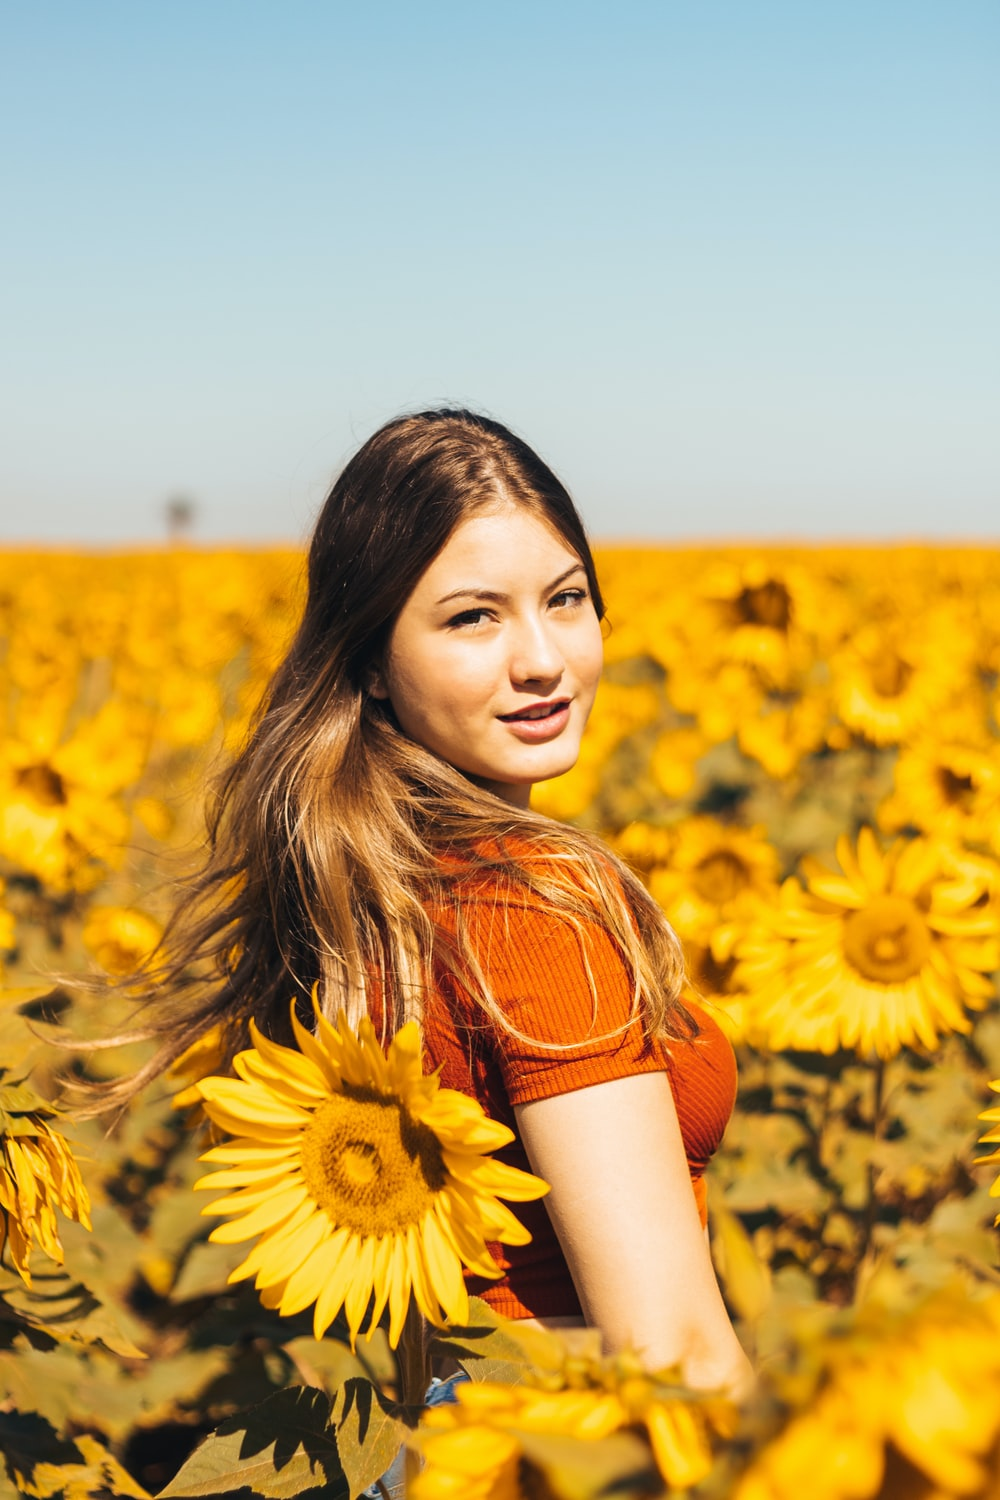 woman in orange and white stripe shirt standing on sunflower field during daytime